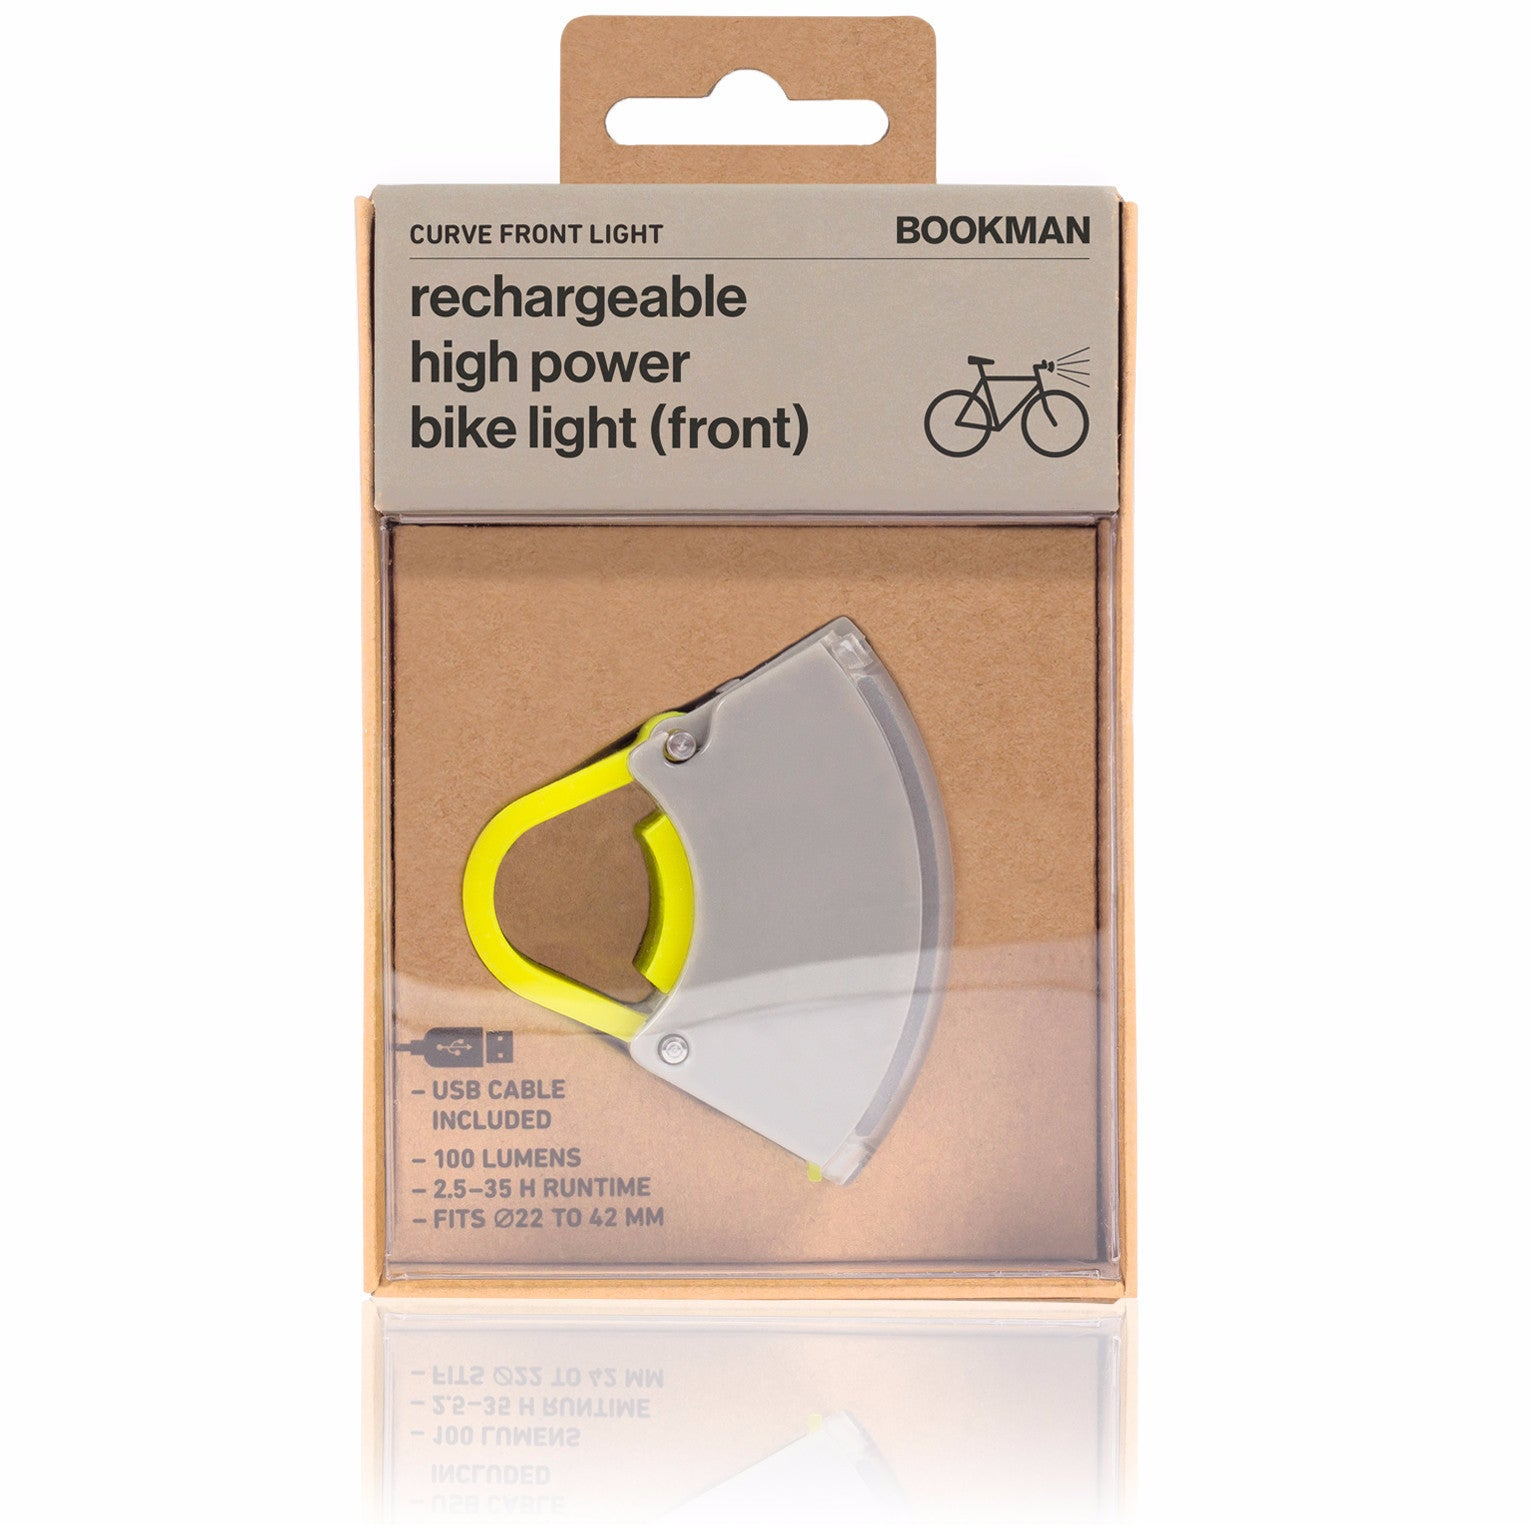 Bookman Curve 2 Light Genopladelig cykellygte FOR / Rechargeable Bicycle Light FRONT